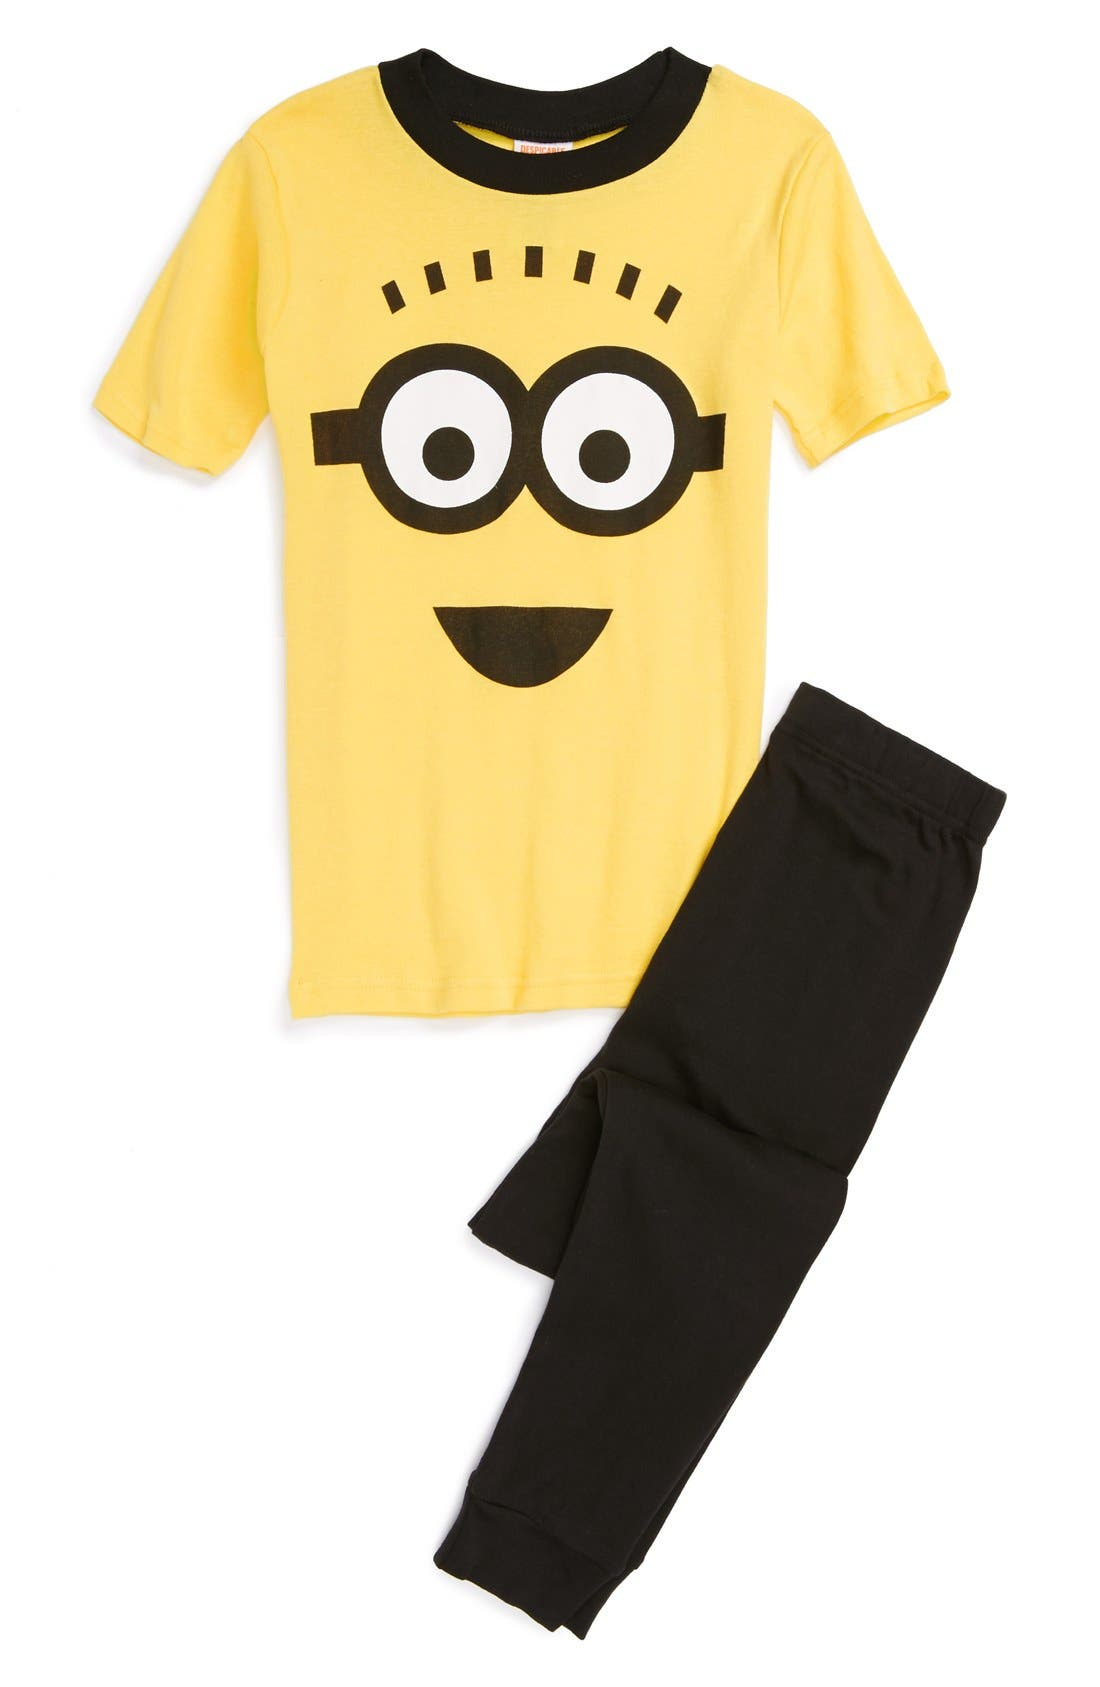 Main Image - Despicable Me 2™ 'Minion' Two-Piece Fitted Pajamas (Little Boys & Big Boys)